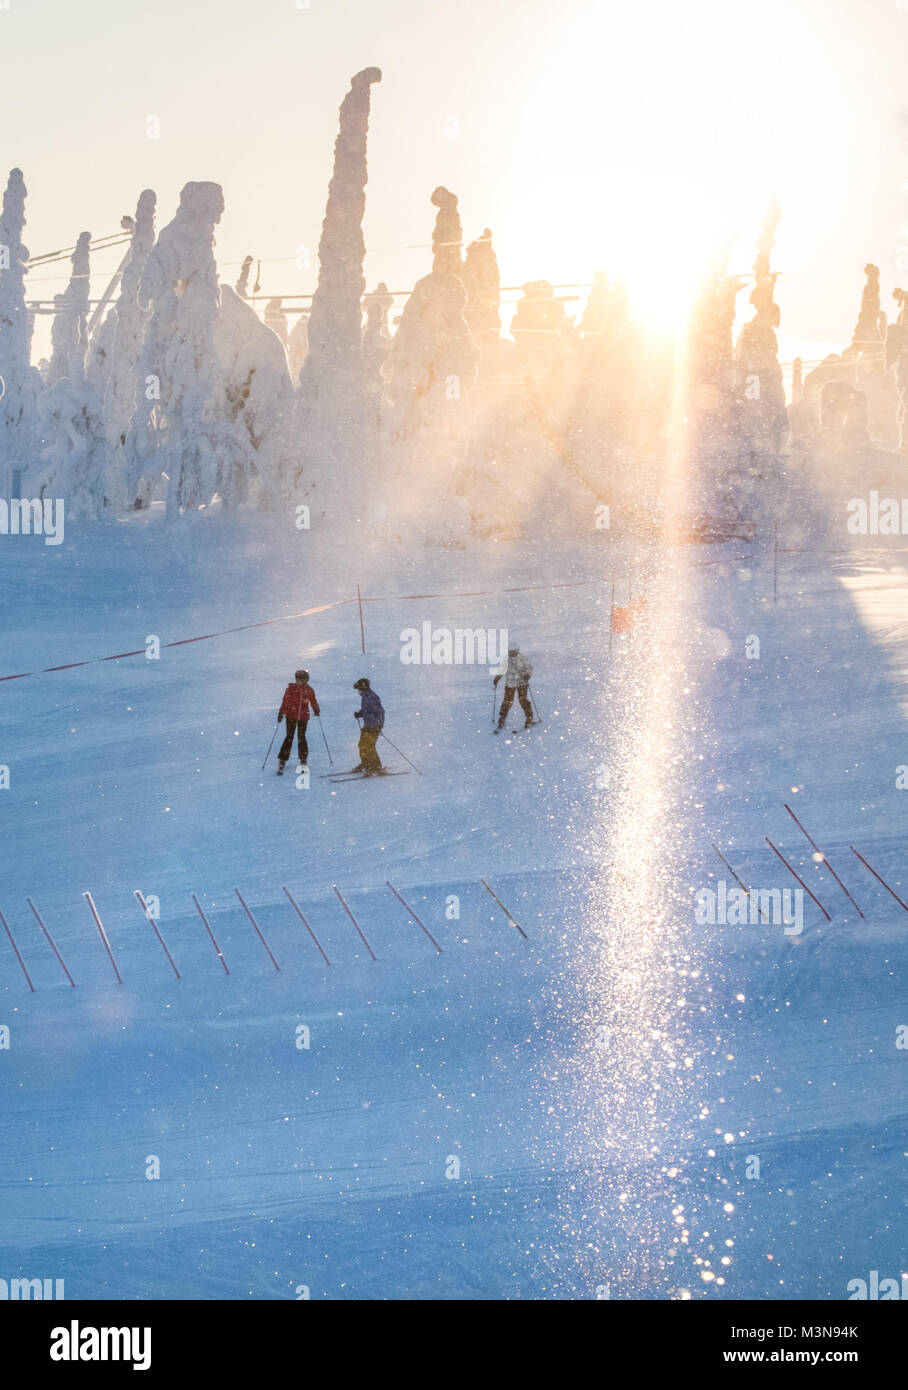 Skiers on the piste at The ski resort of Ruka in Finland Stock Photo